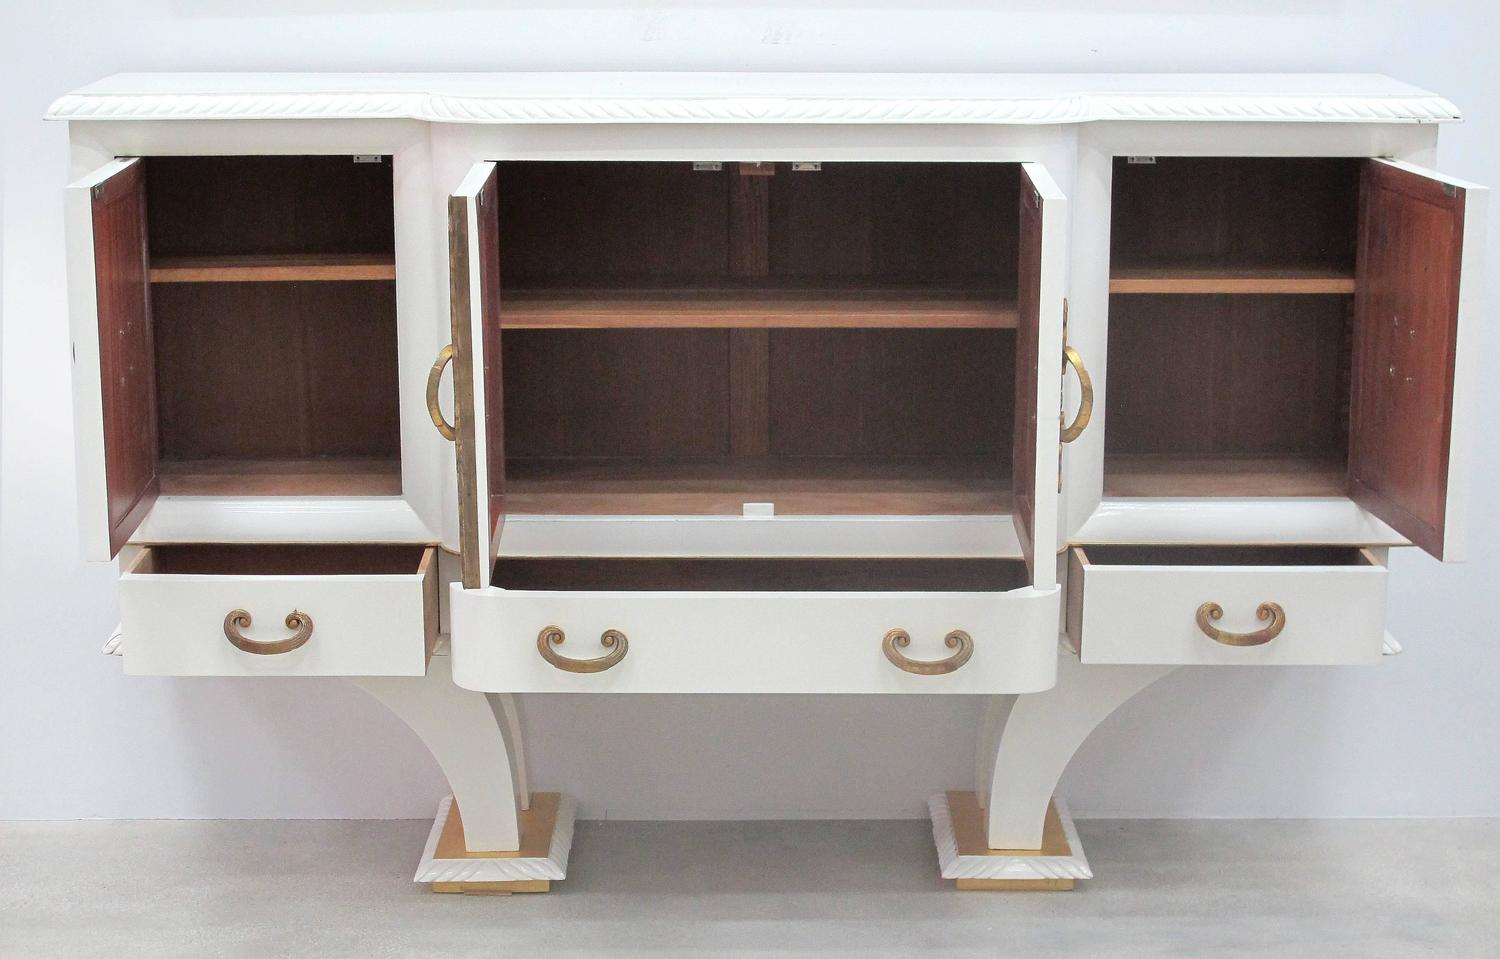 French 1940s lacquered oak cabinet for sale at 1stdibs for 1940s kitchen cabinets for sale